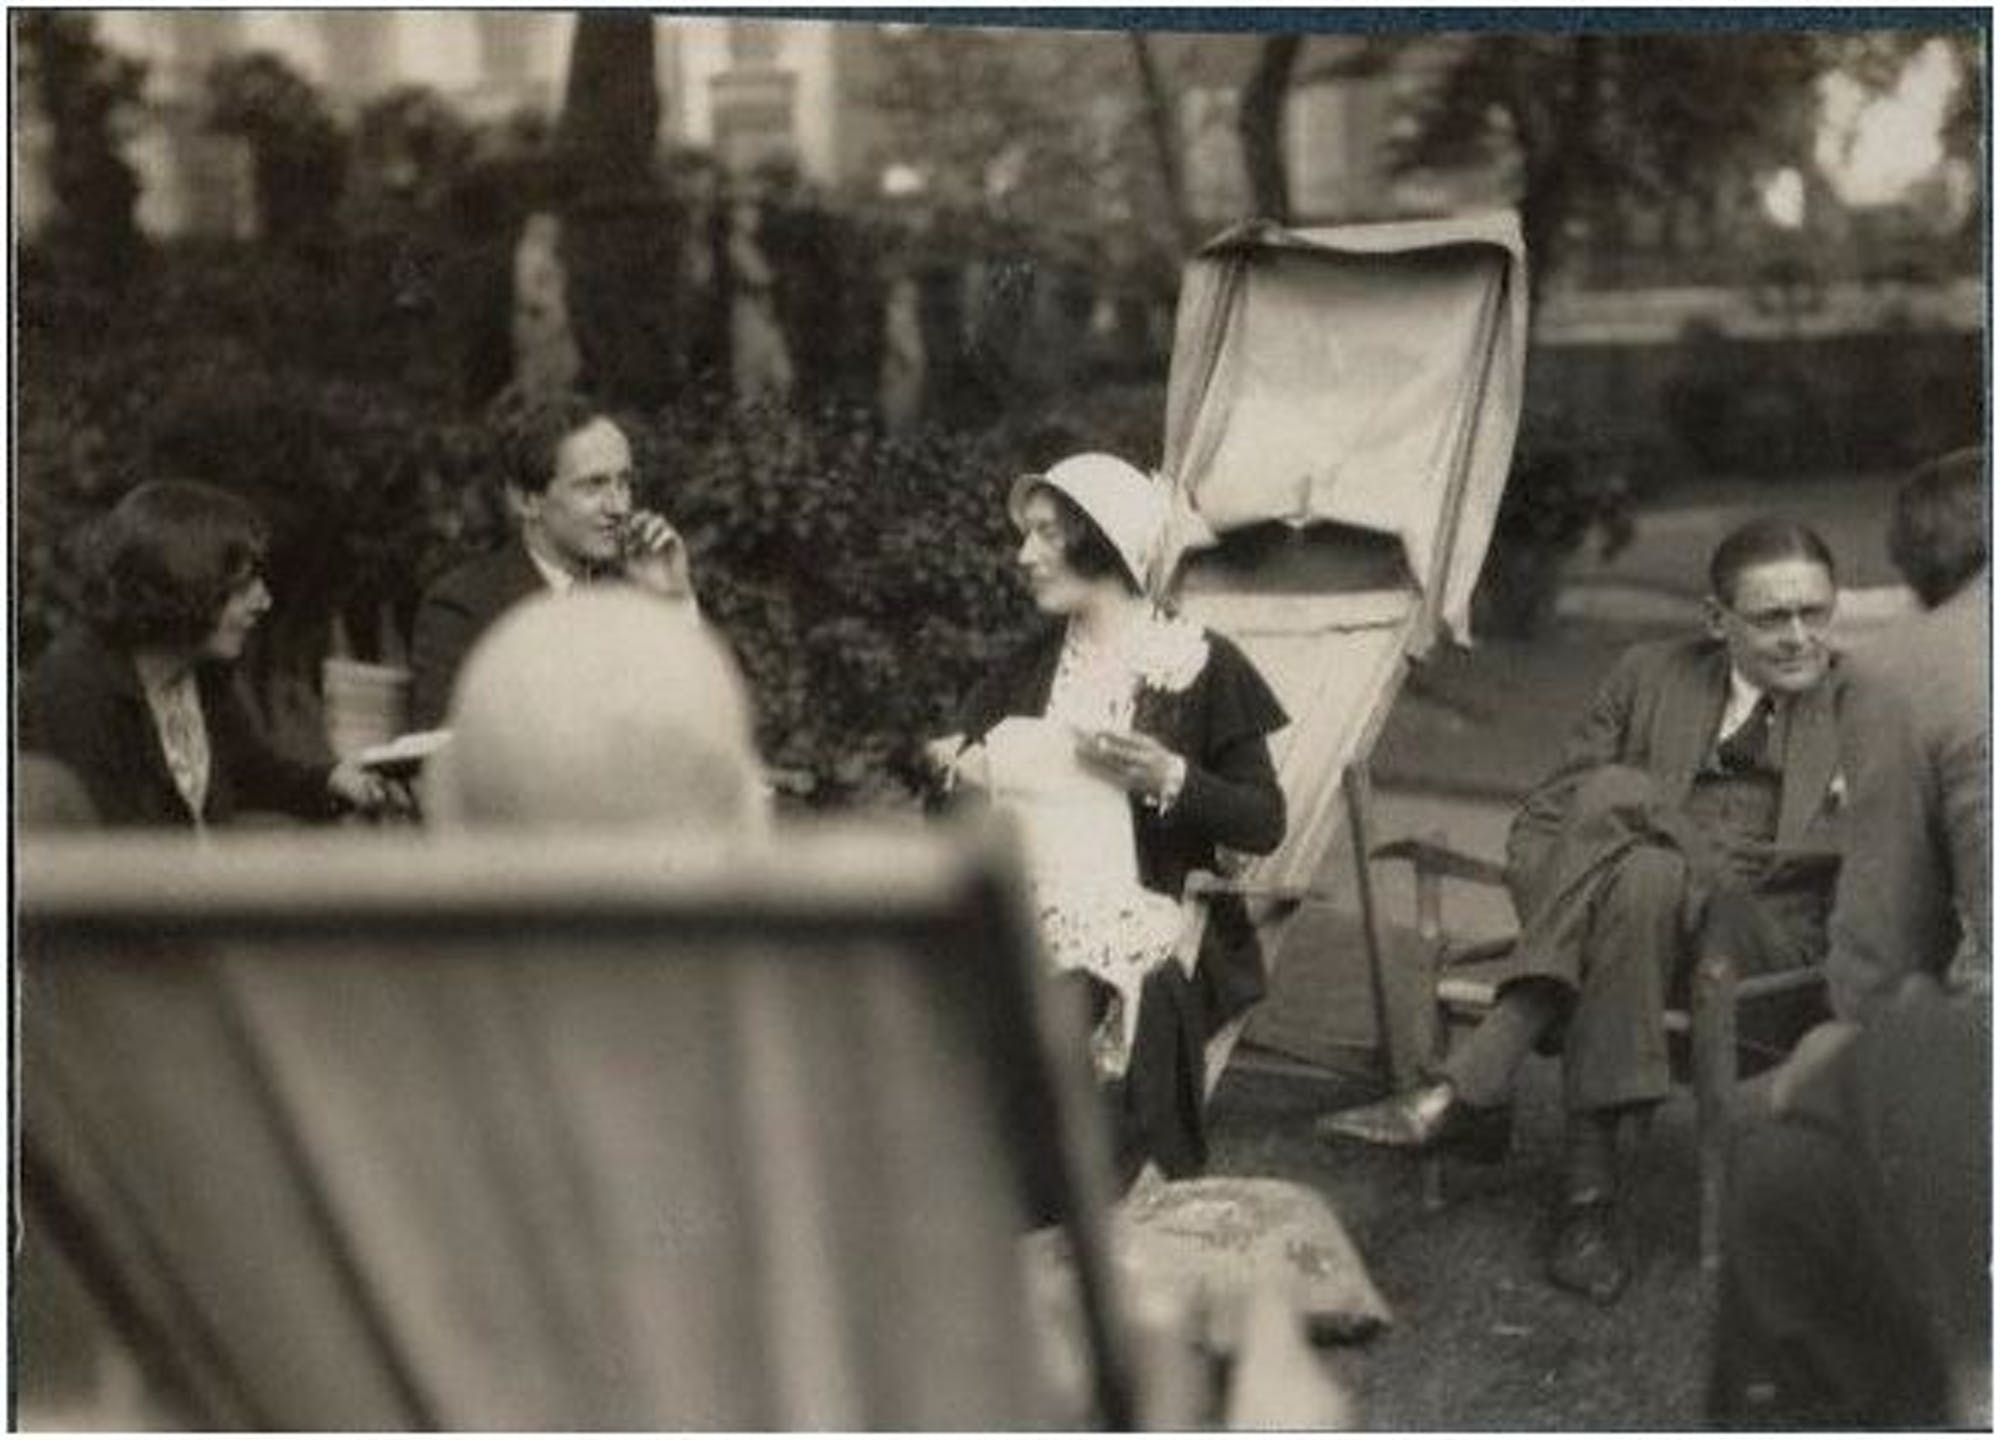 vivienne-haigh-wood-eliot-and-t-s-eliot-1931-1